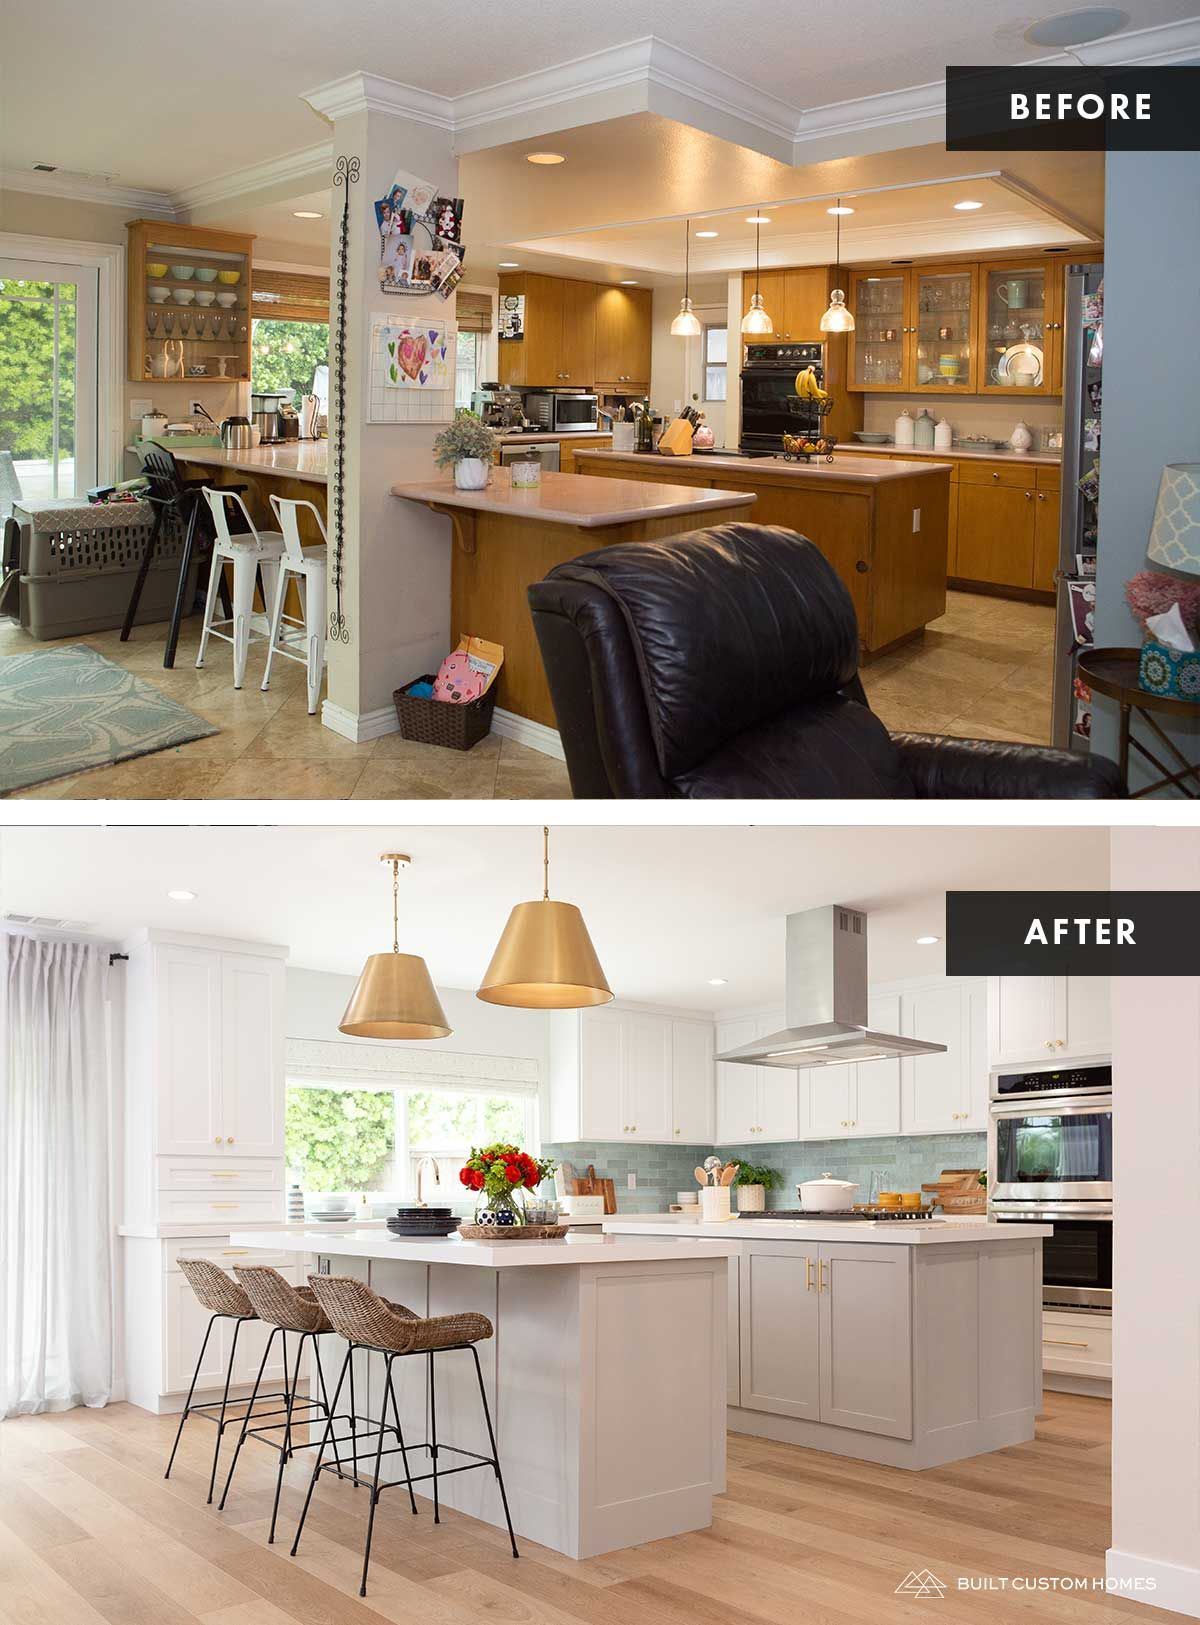 Season 2 Episode 11 It S My Dream Home Now The Blog By Jasmine Roth Home White Kitchen Rustic Dream House